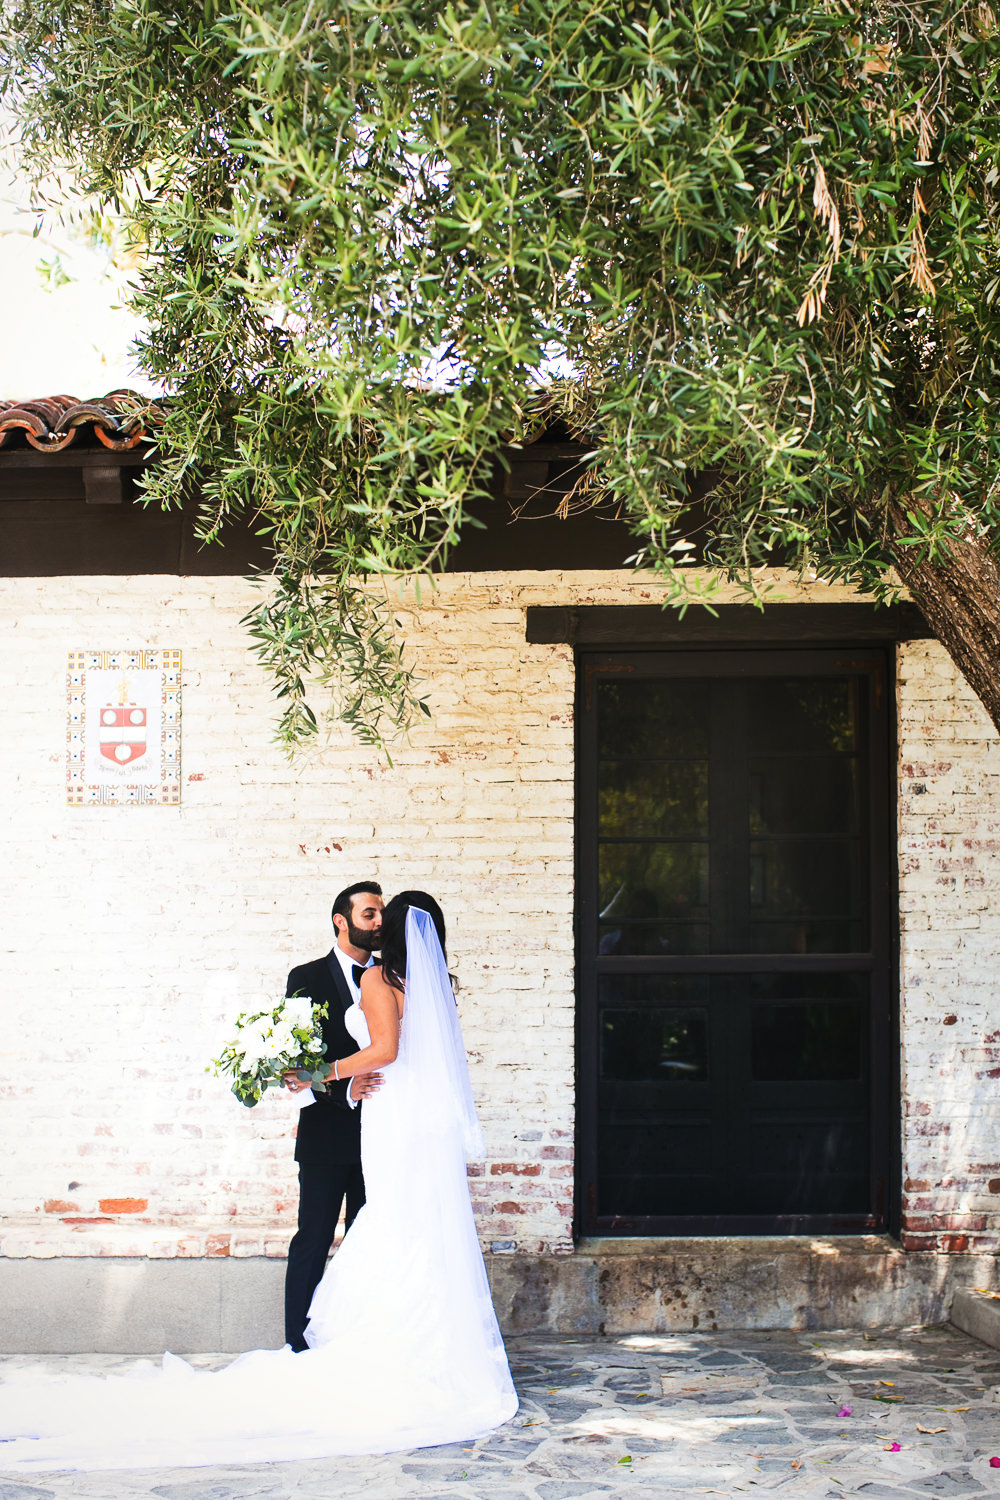 Hummingbird Nest Ranch Wedding - Persian Bride & Groom Kissing